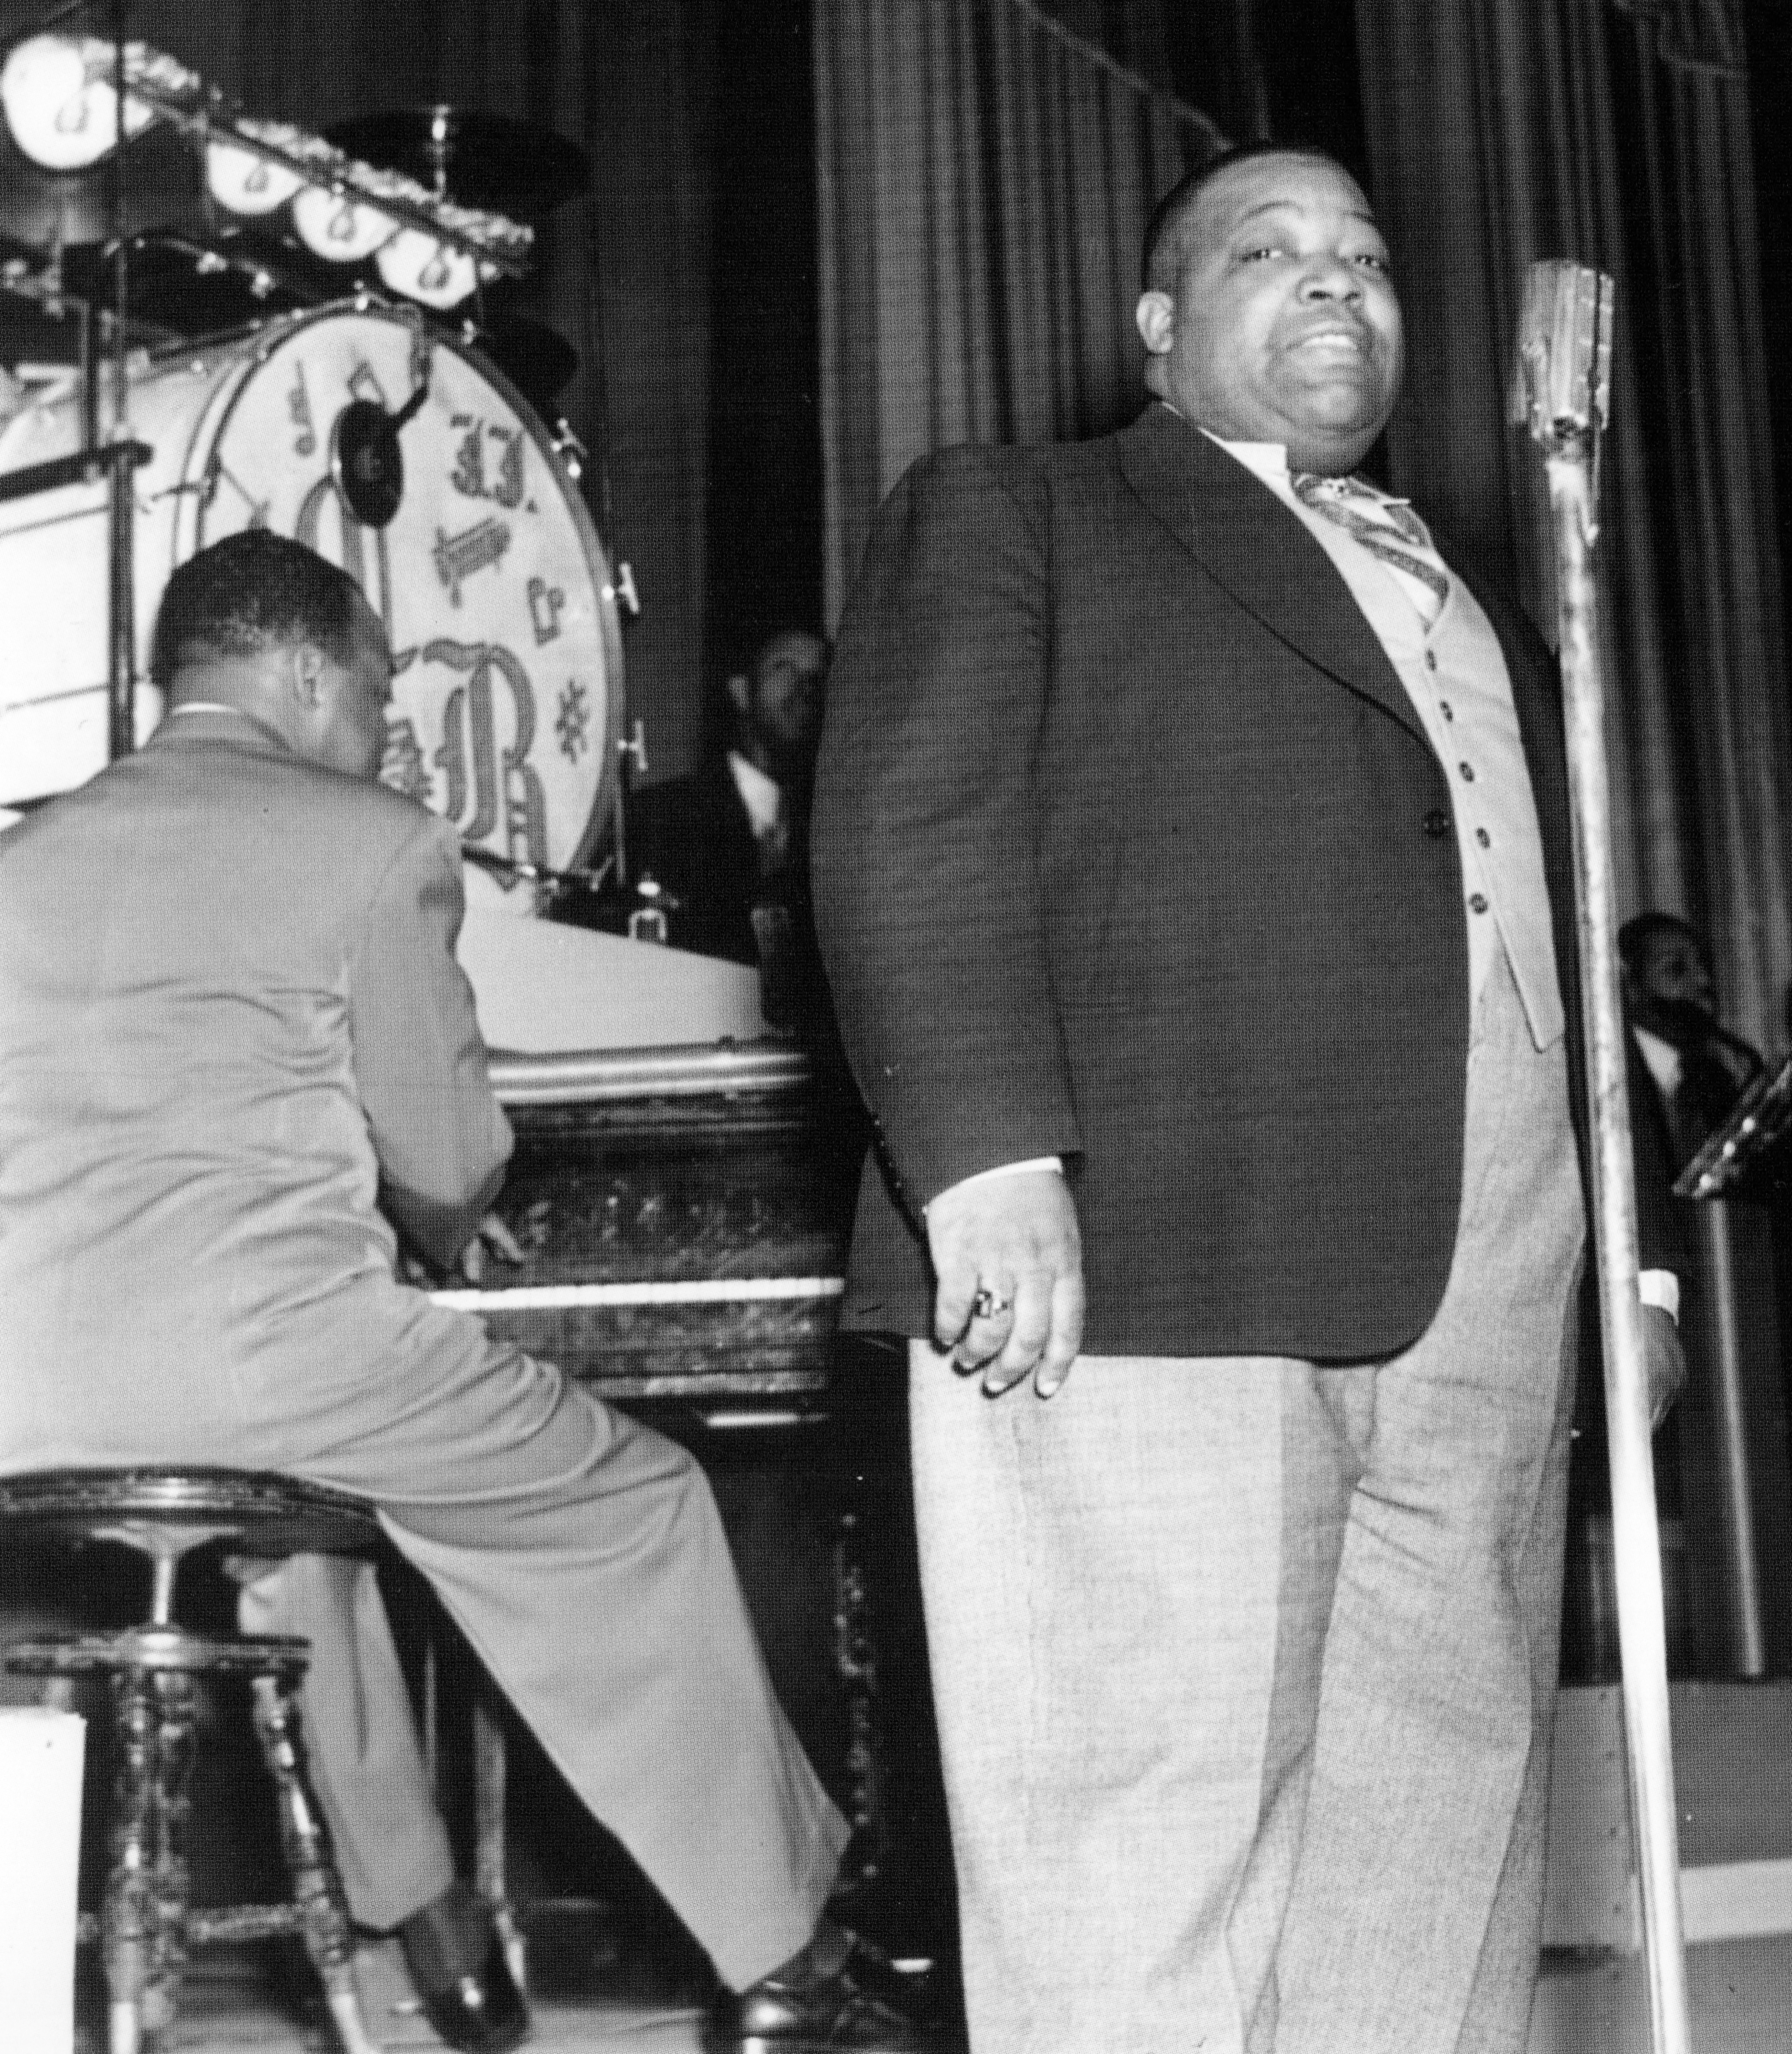 Count Basie and Jimmy Rushing, the original Mr. Five-by-Five, at the Apollo Theater - early 1939.